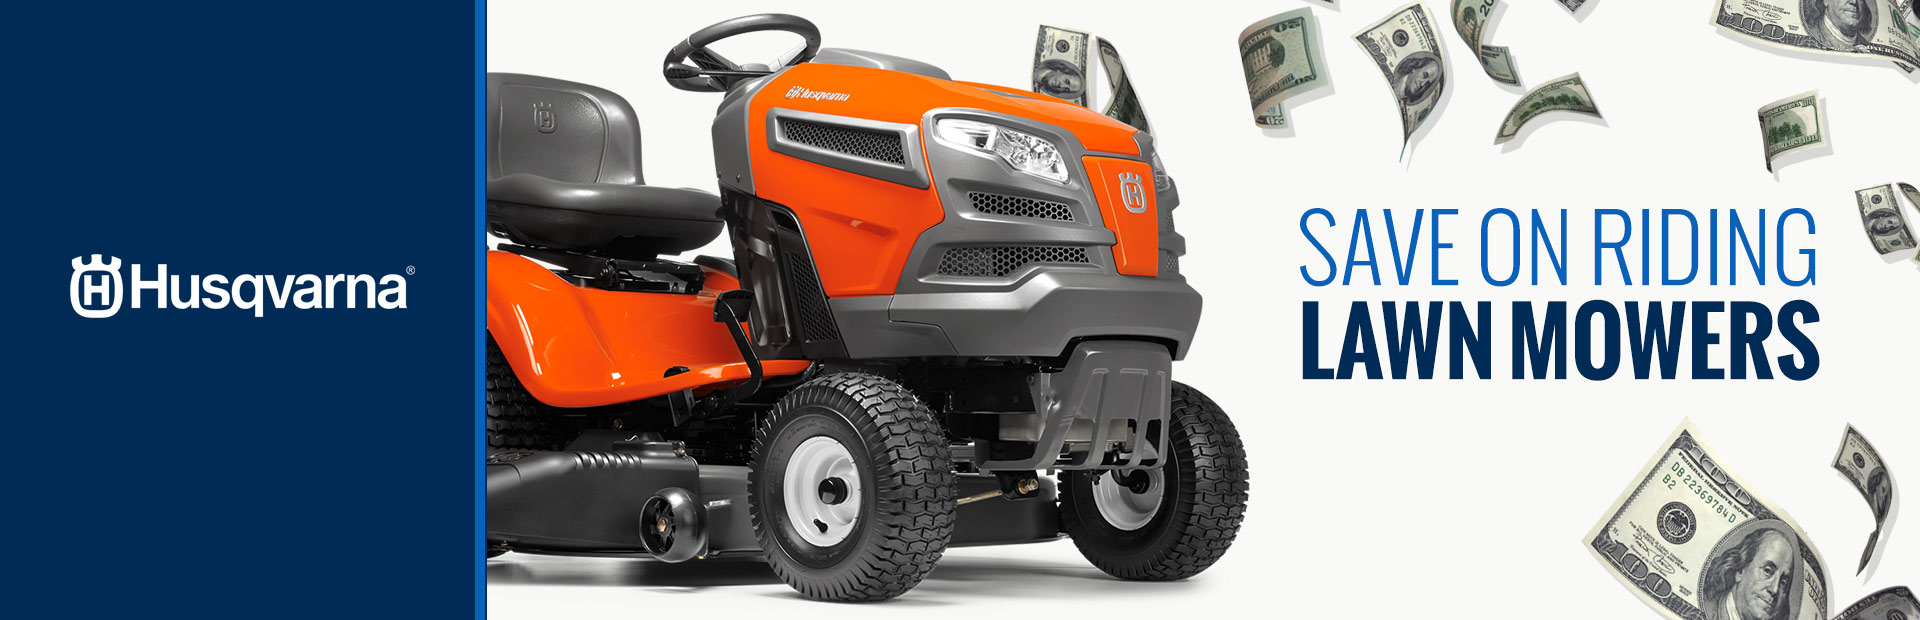 Save on Riding Lawn Mowers